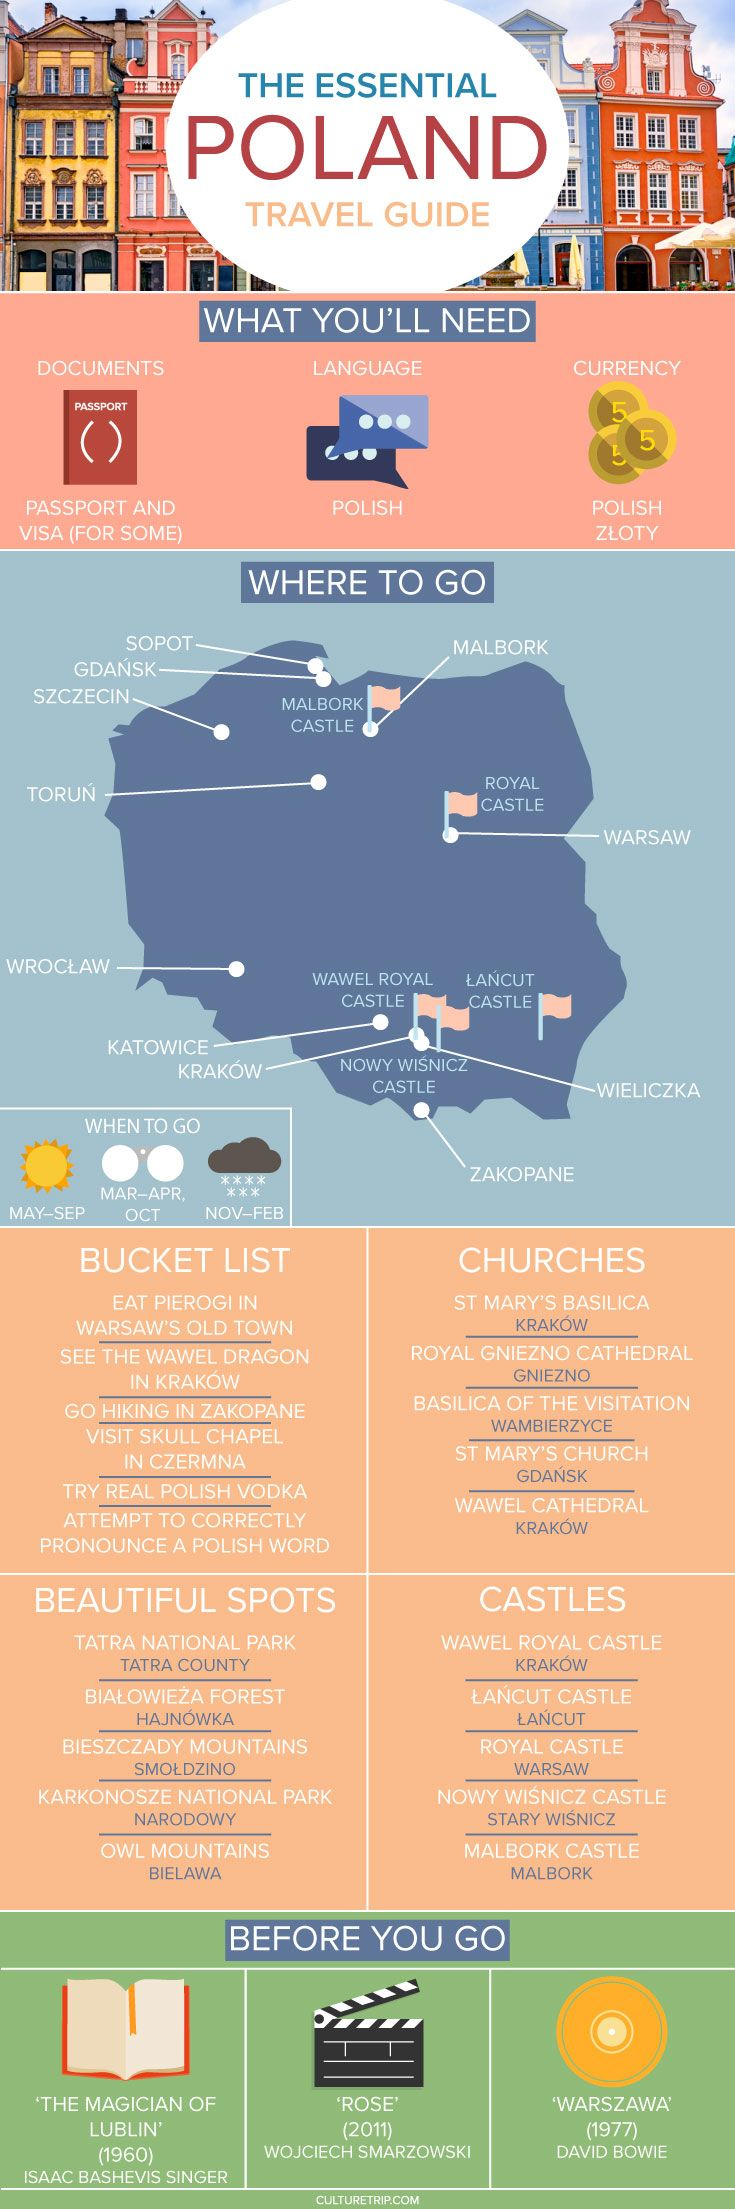 The Essential Travel Guide to Poland (Infographic)|Pinterest: @theculturetrip